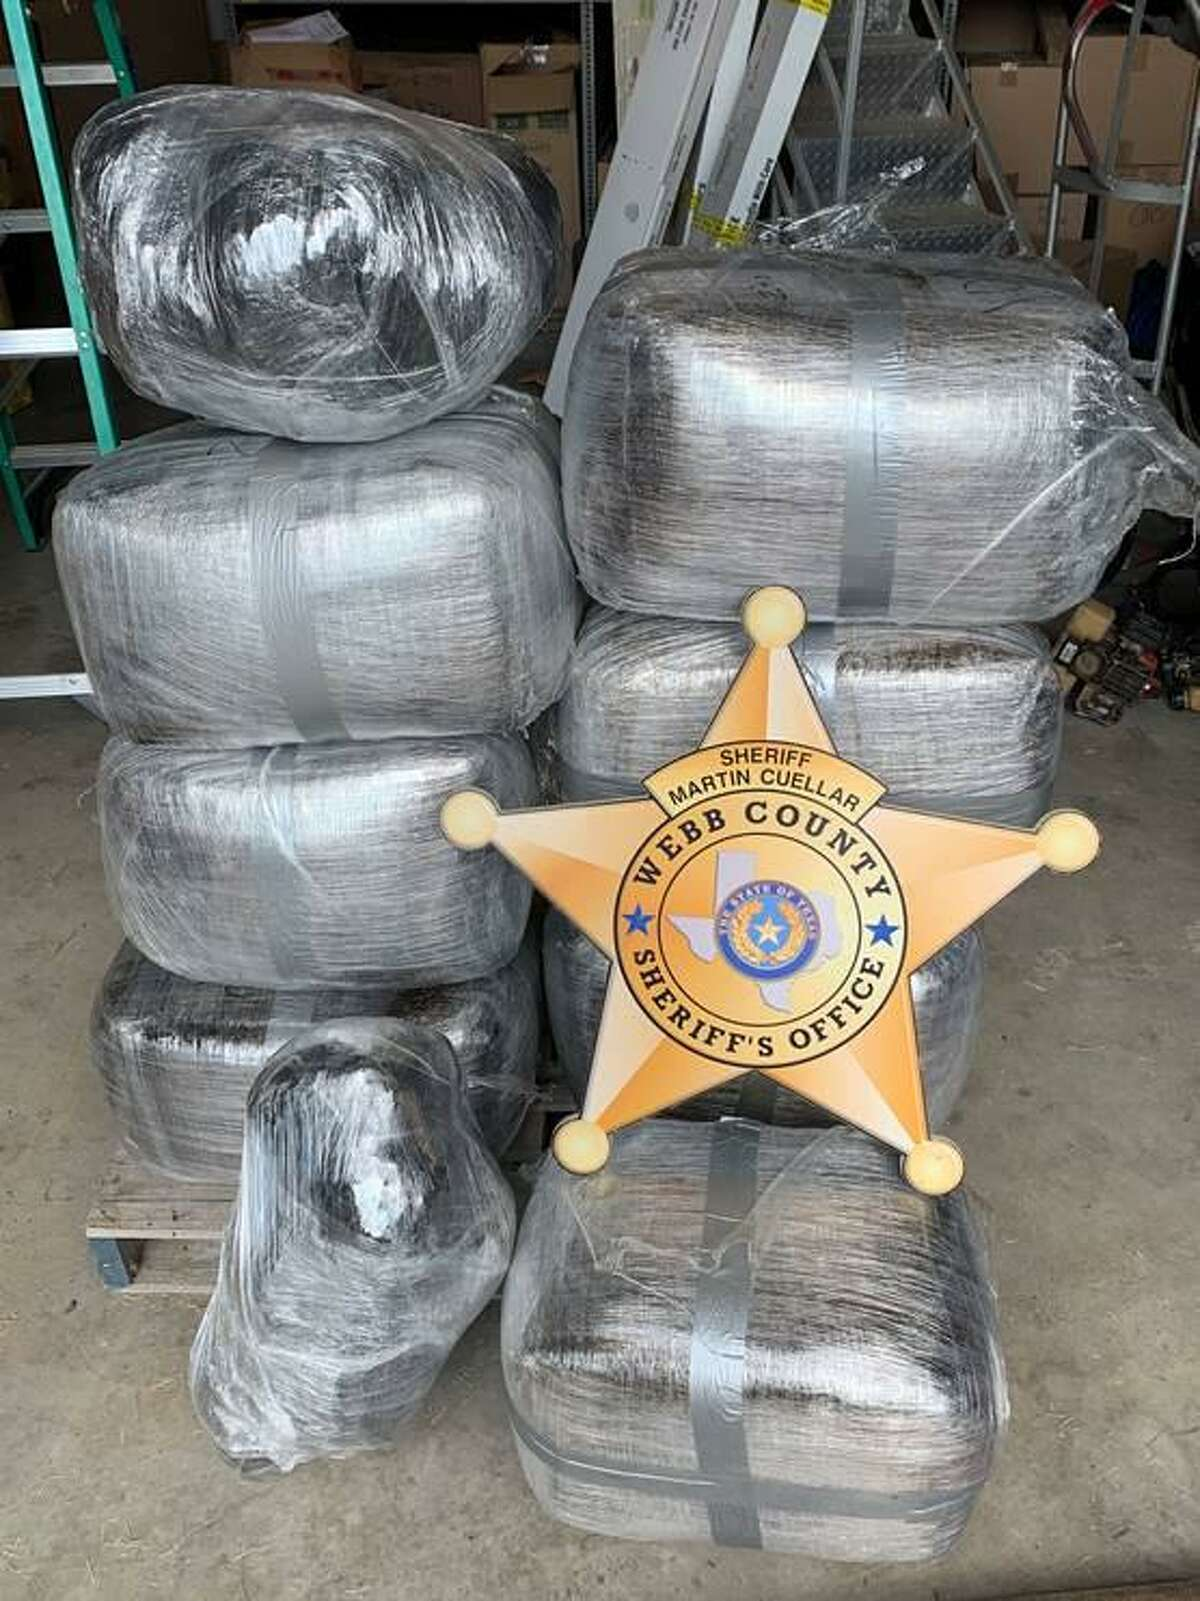 Authorities said they seized these nine bundles of marijuana from a home in central Laredo. The contraband weighed about 206 pounds and had an estimated street value of $61,800.